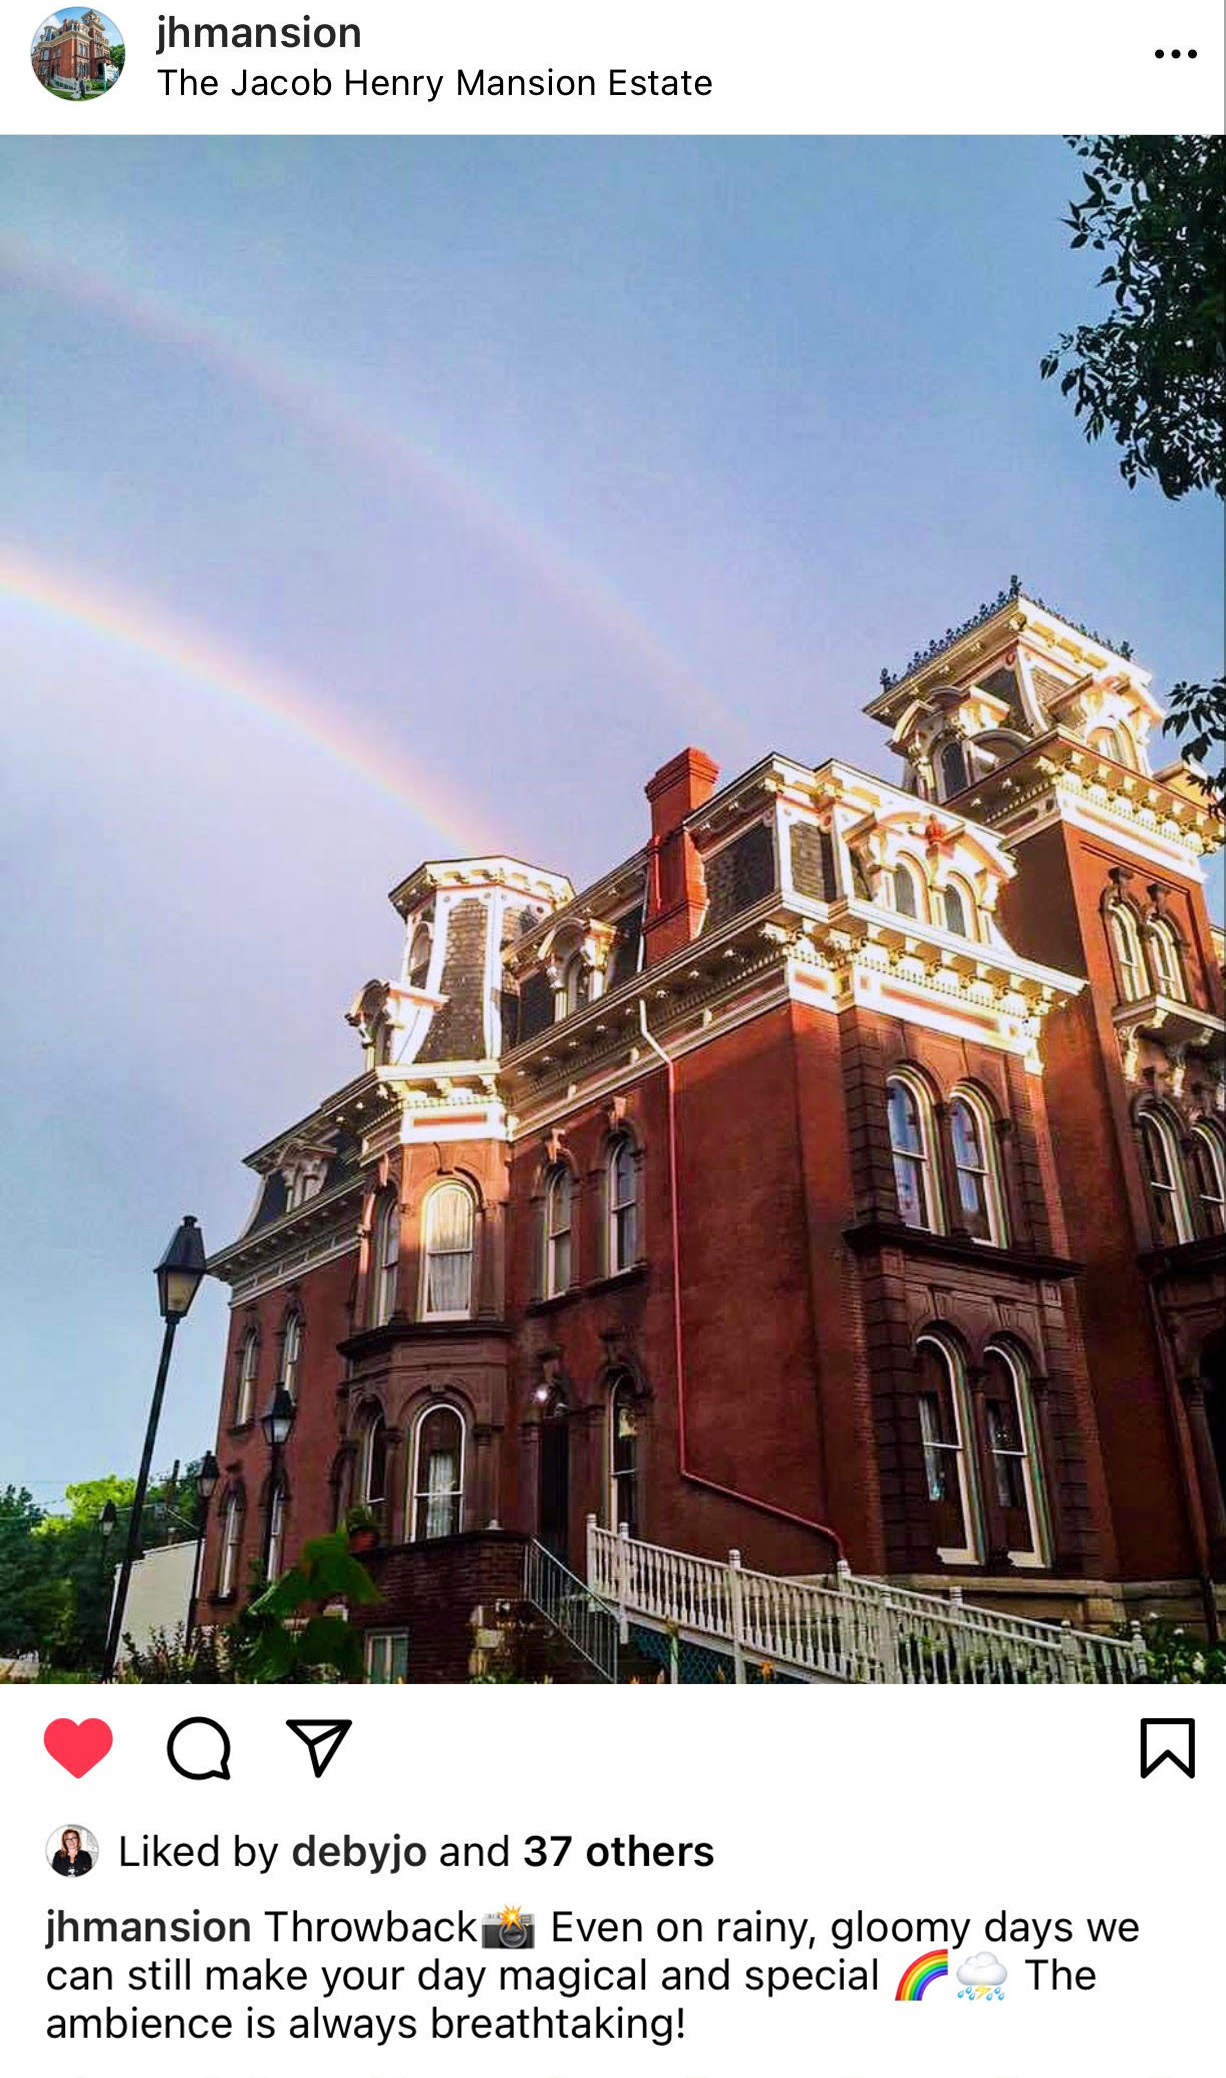 jacob henry mansion with a rainbow